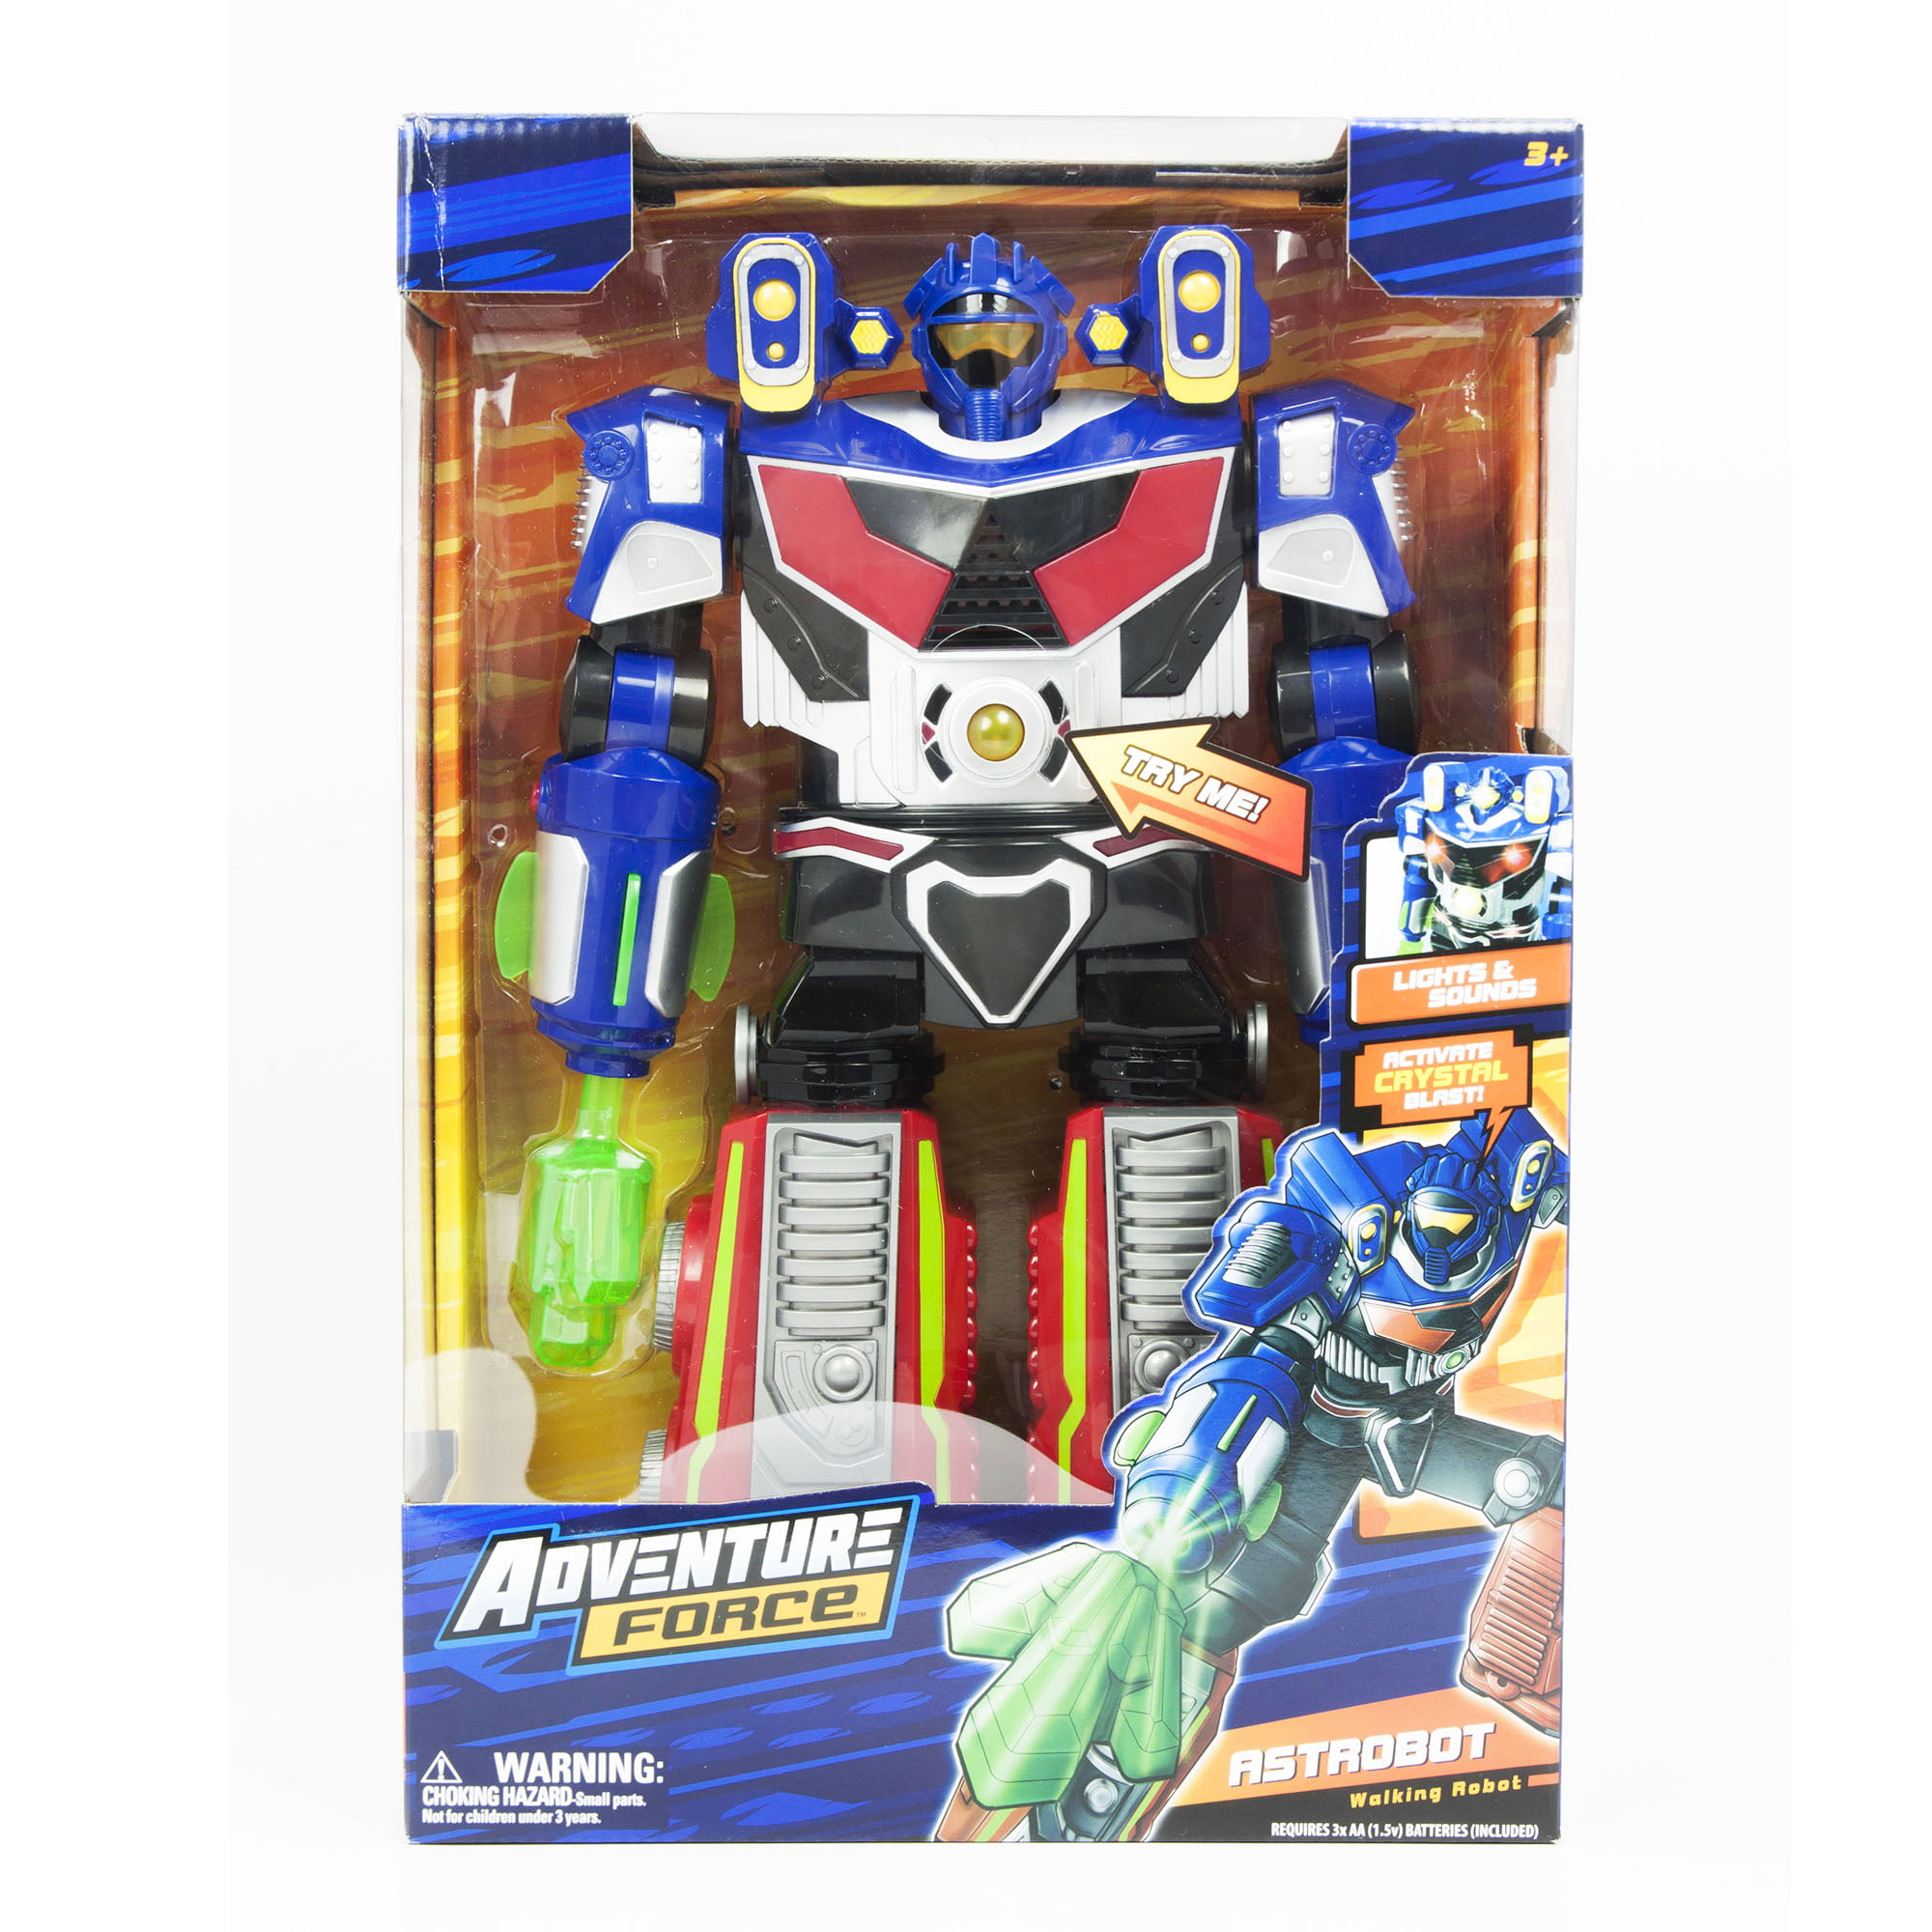 Adventure Force Astrobot Walking Robot Toy with Lights & Sound by Generic